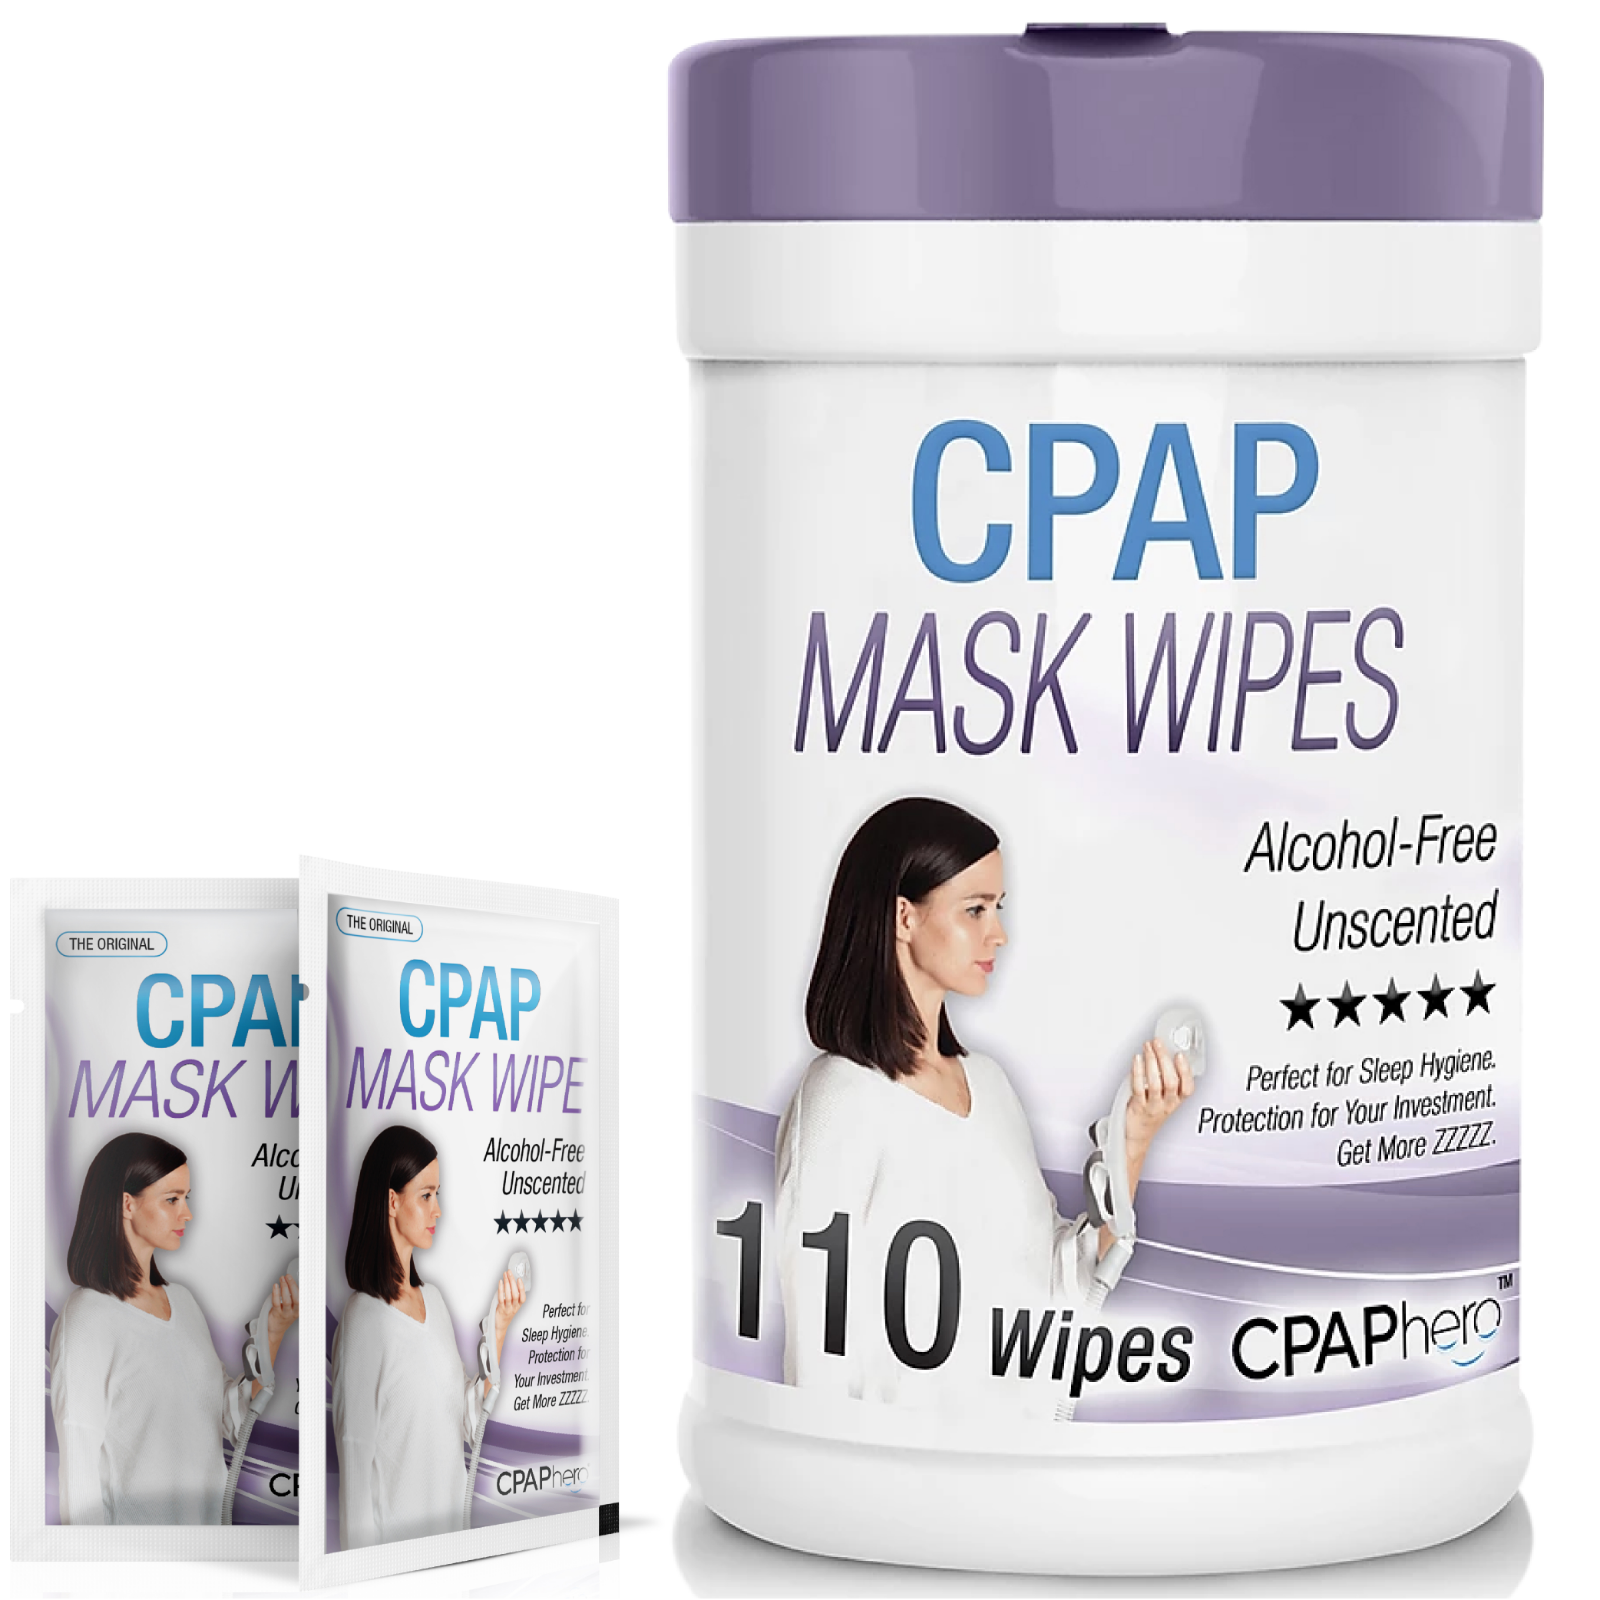 1x 110 Pack Bottle CPAP Mask Wipes - Alcohol-Free and Unscen